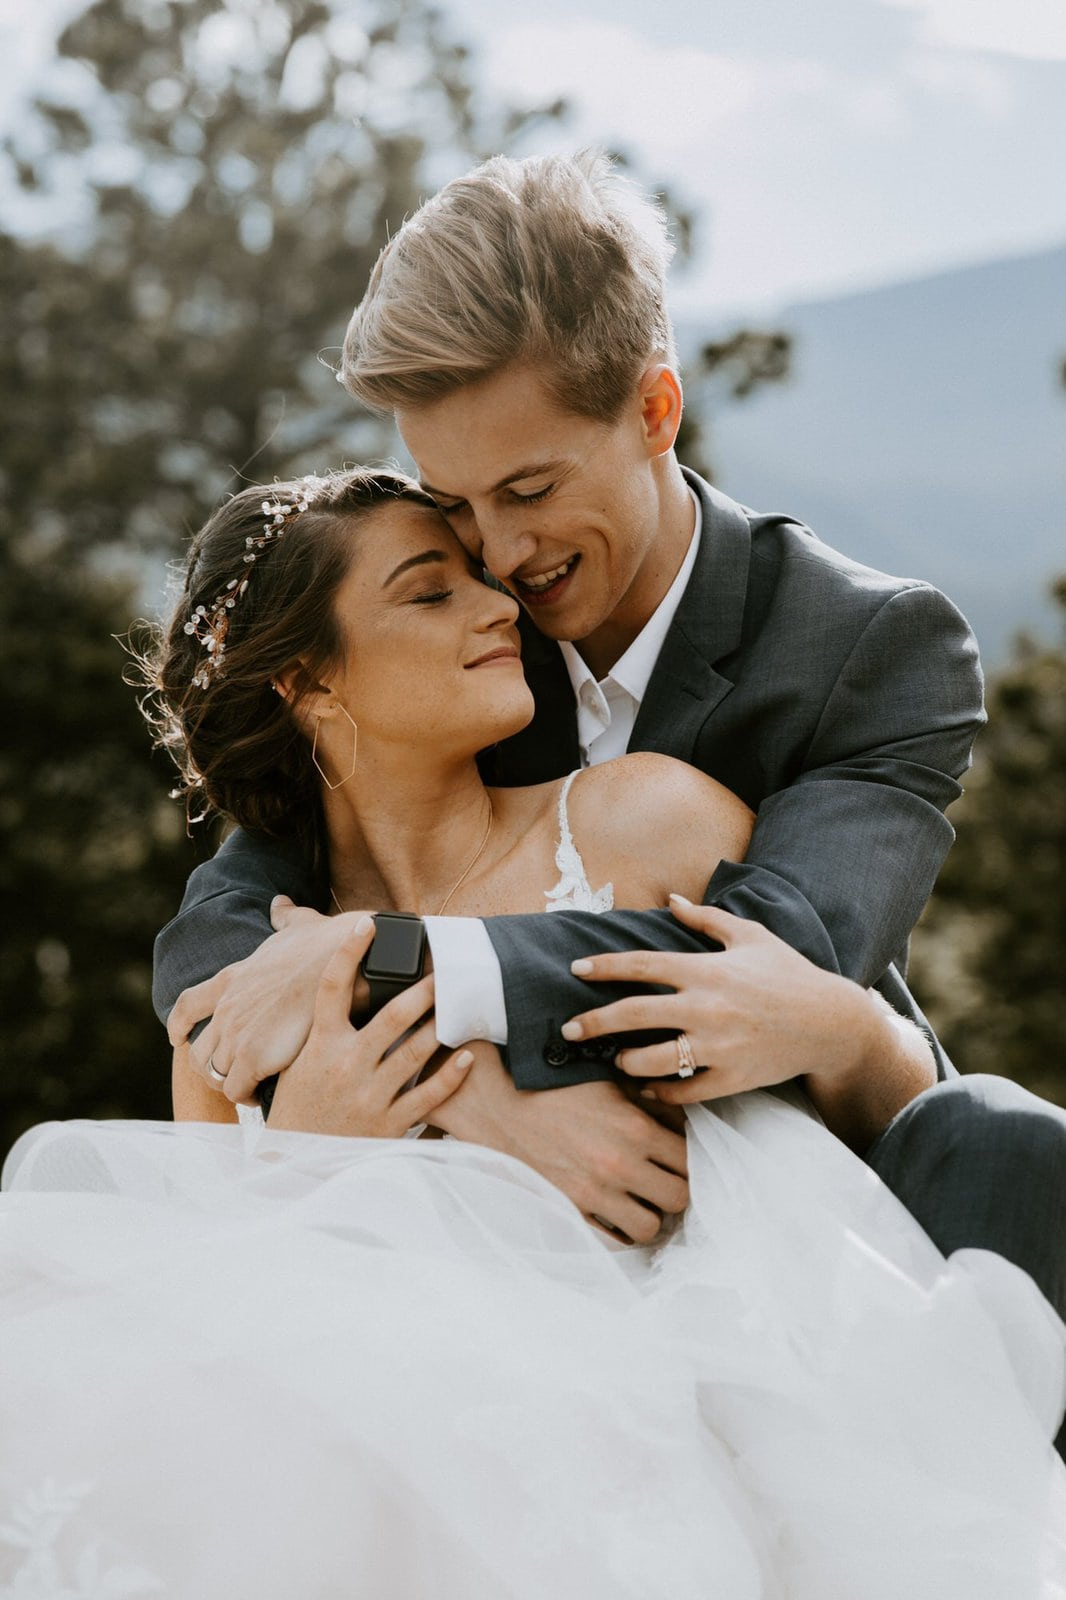 Intimate portrait of bride and groom.